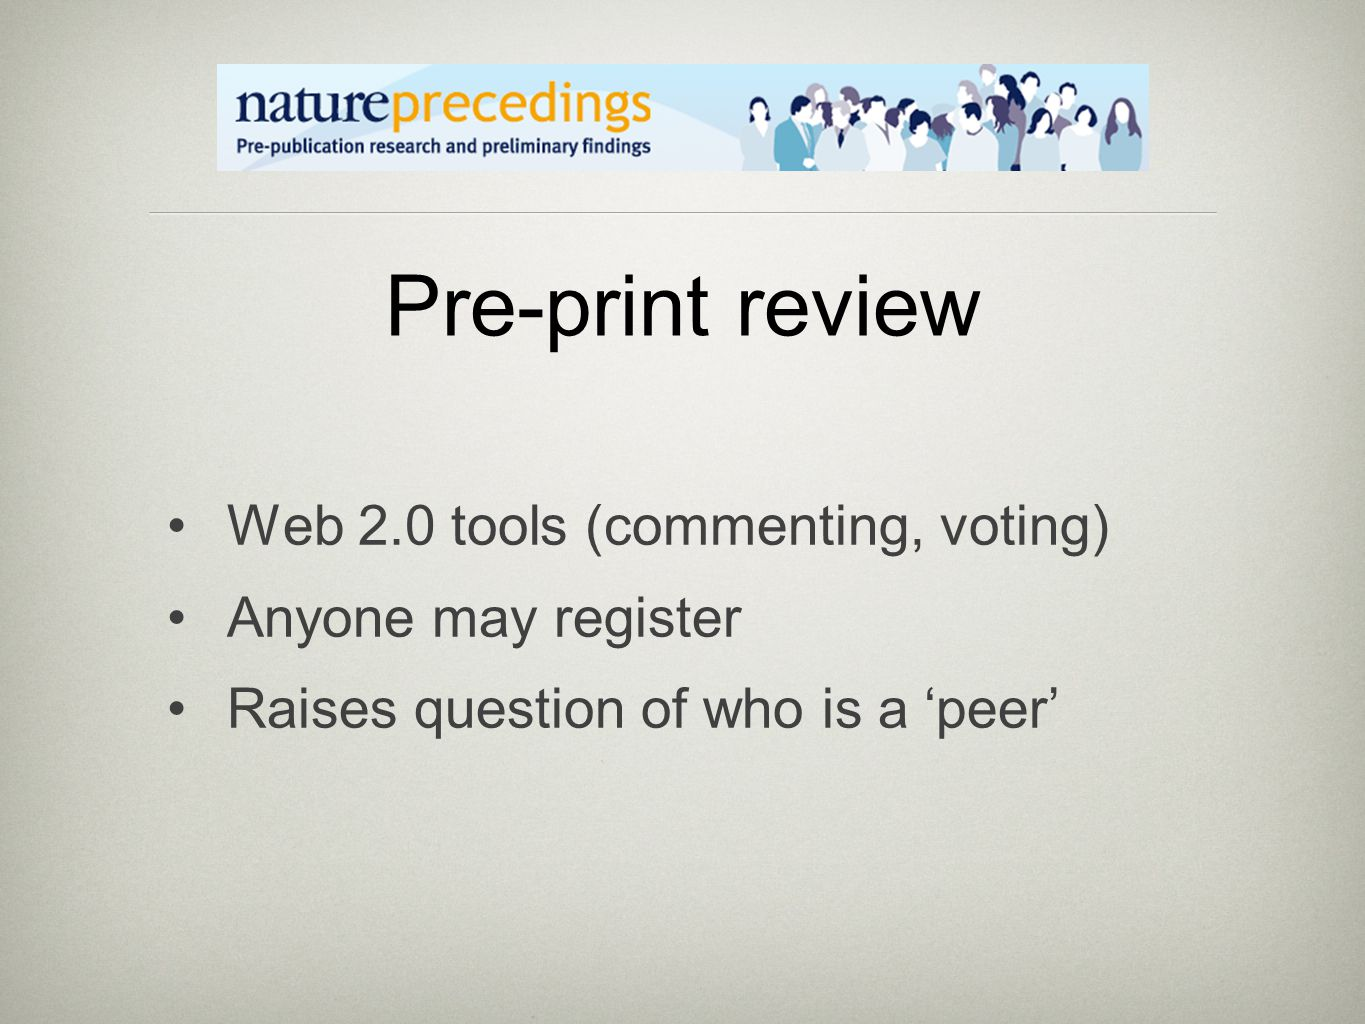 Take time to understand the peer review process (while many works still undergo traditional peer review, new models are appearing)